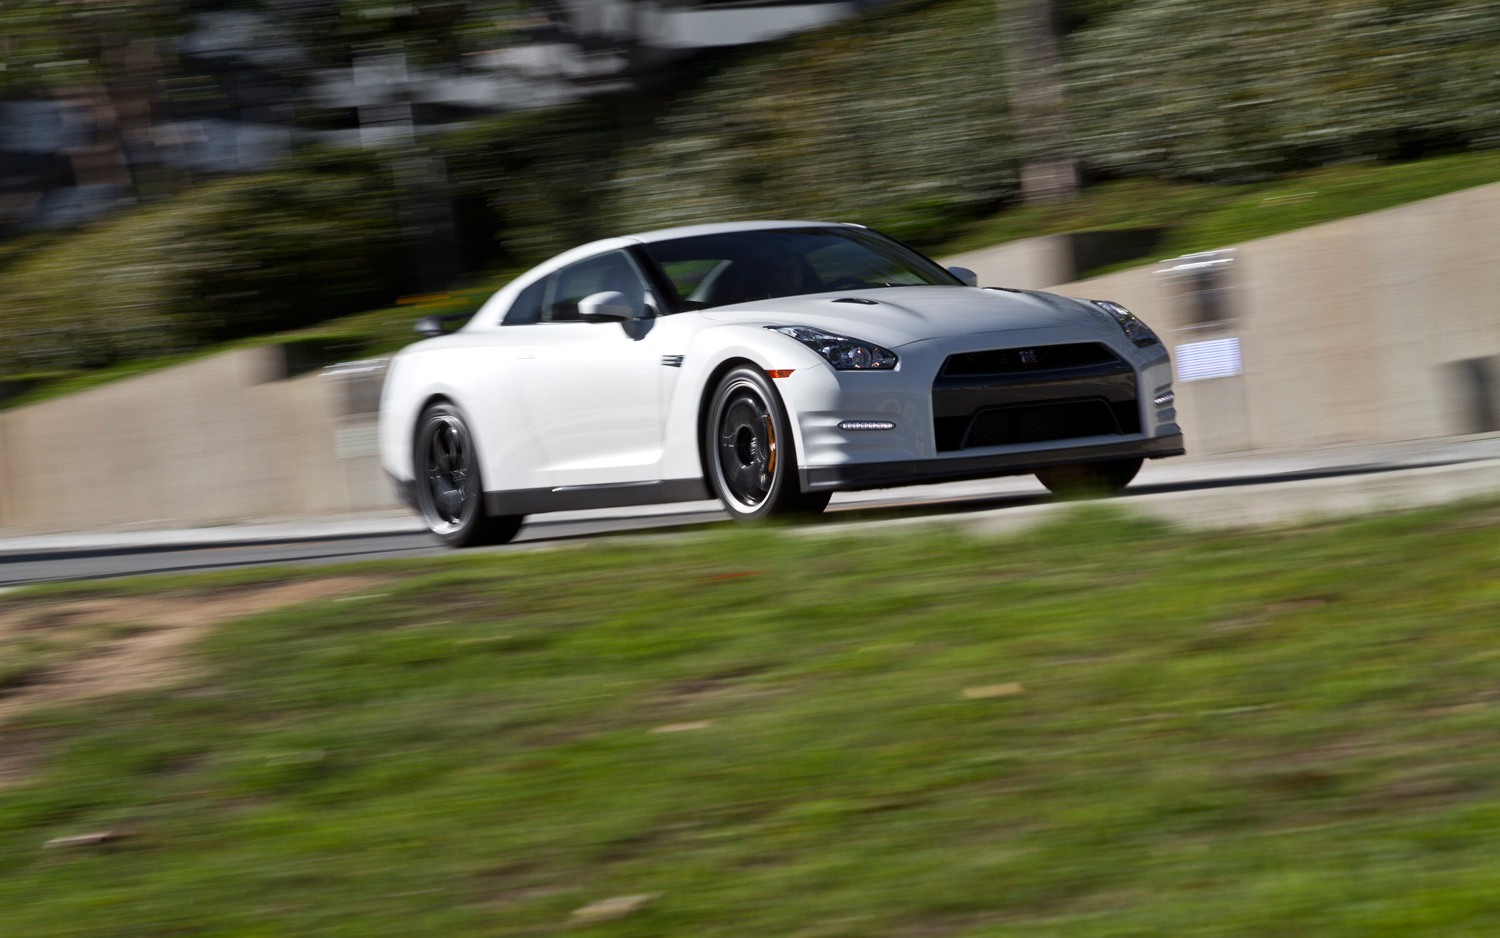 2013 Nissan Gt R Black Edition Long Term Update 4 Motor Trend Lincoln Town Car Lowrider